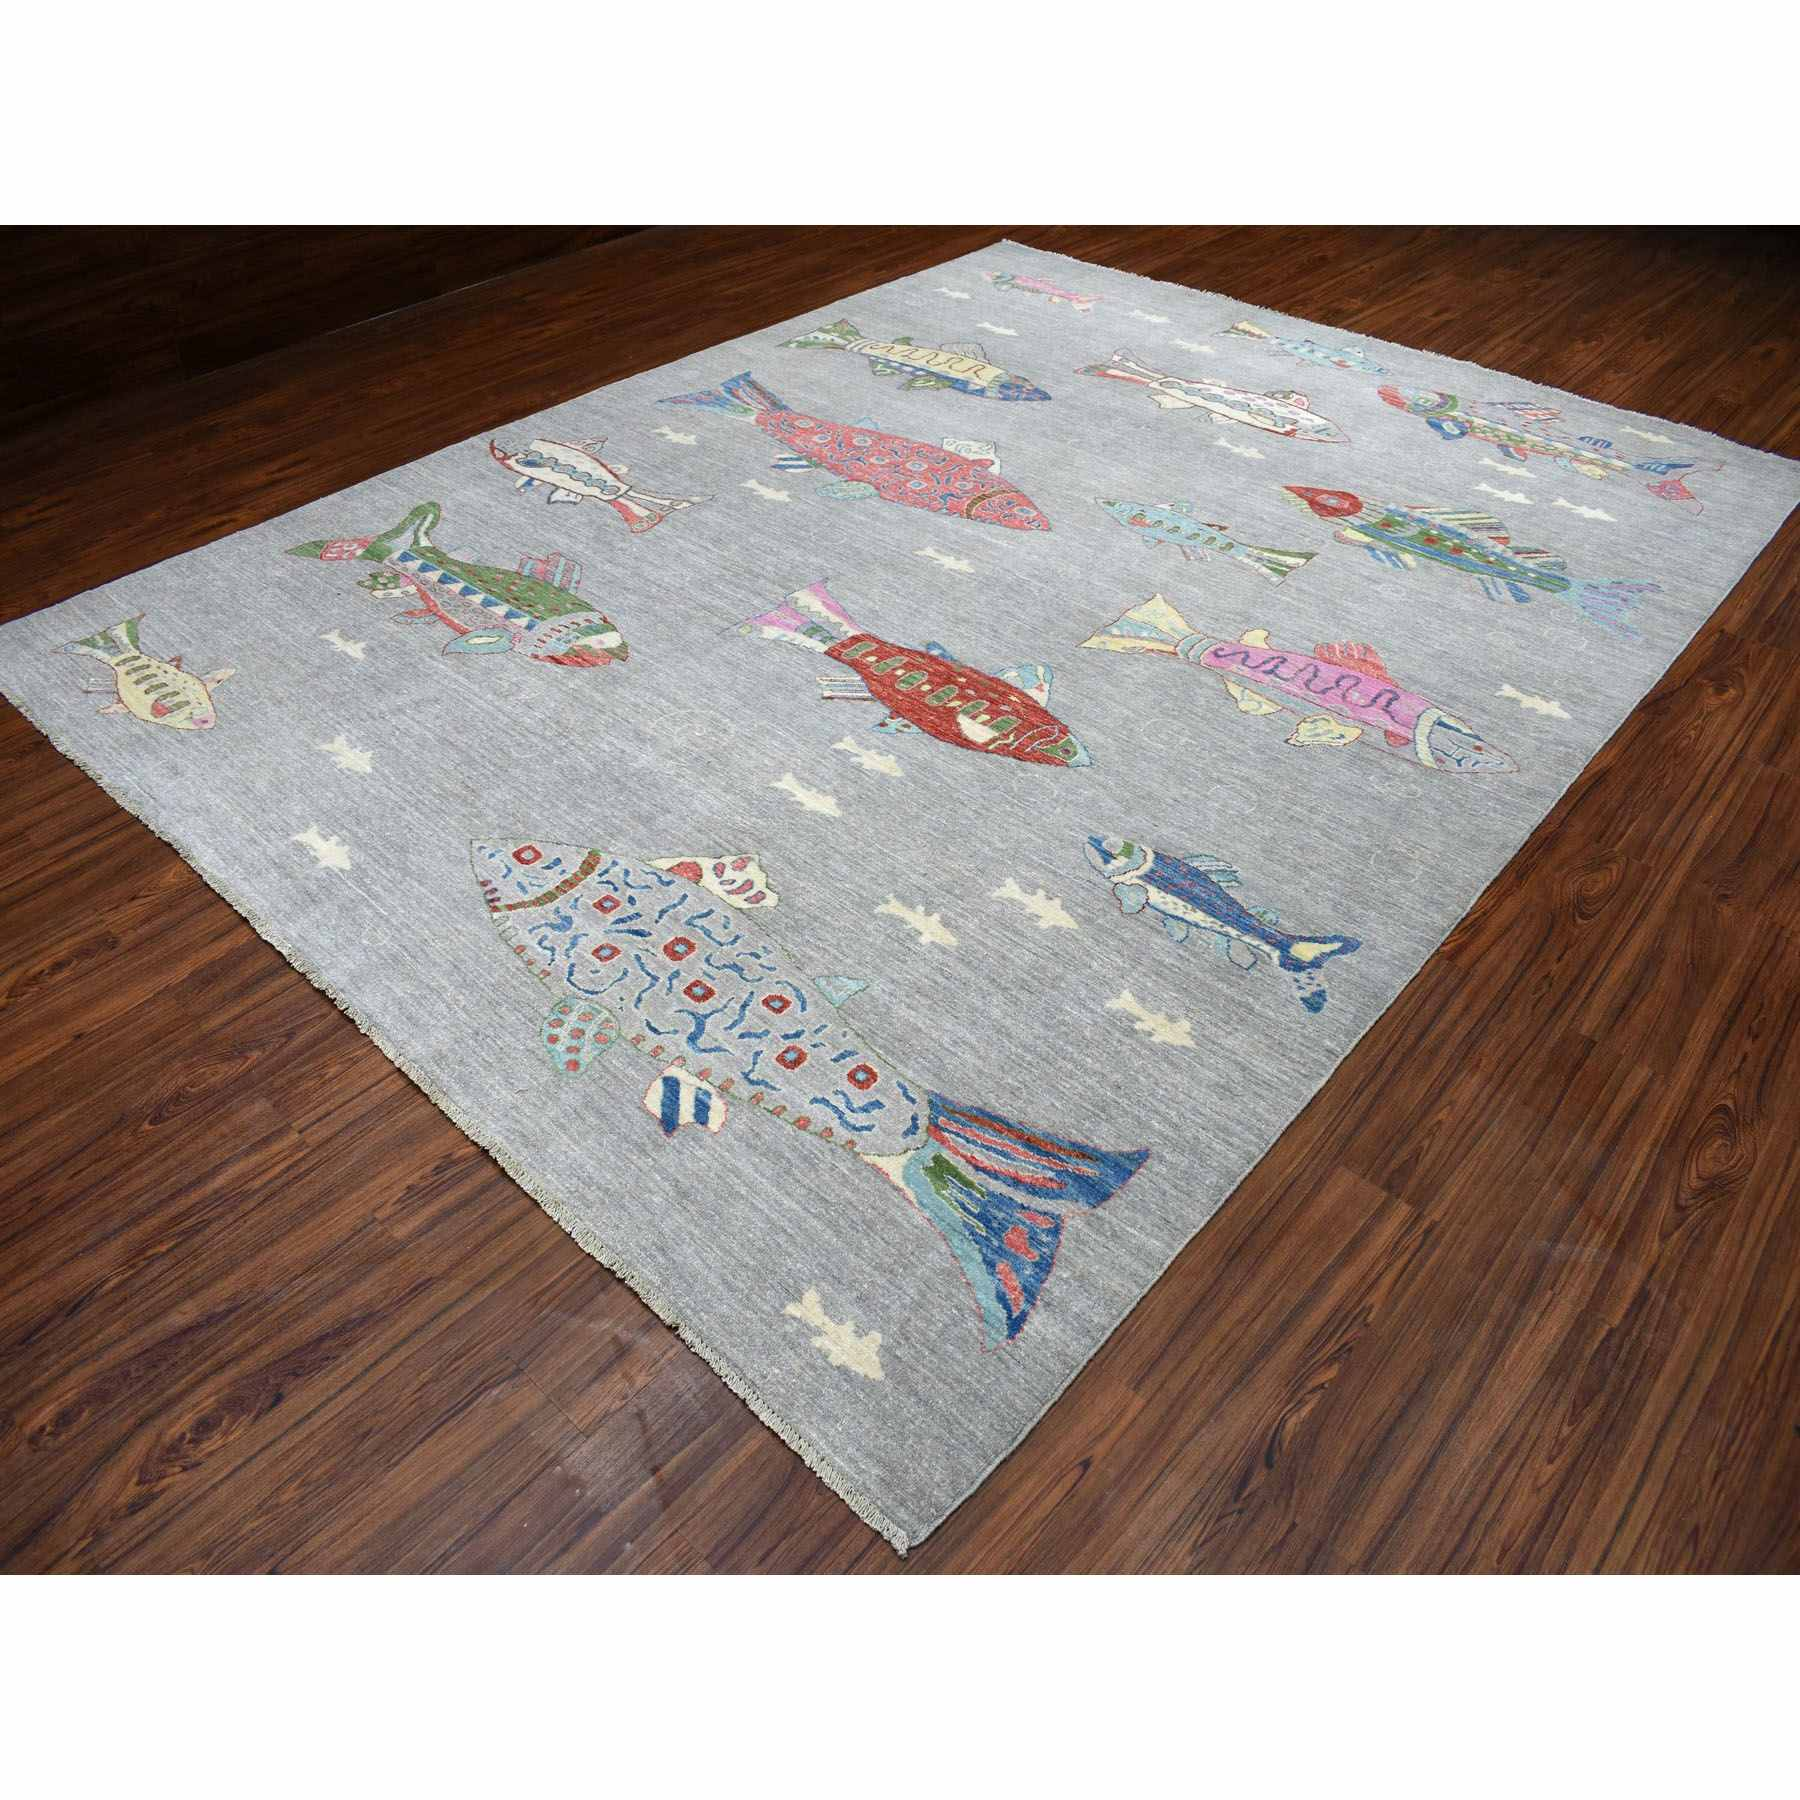 Modern-and-Contemporary-Hand-Knotted-Rug-266895